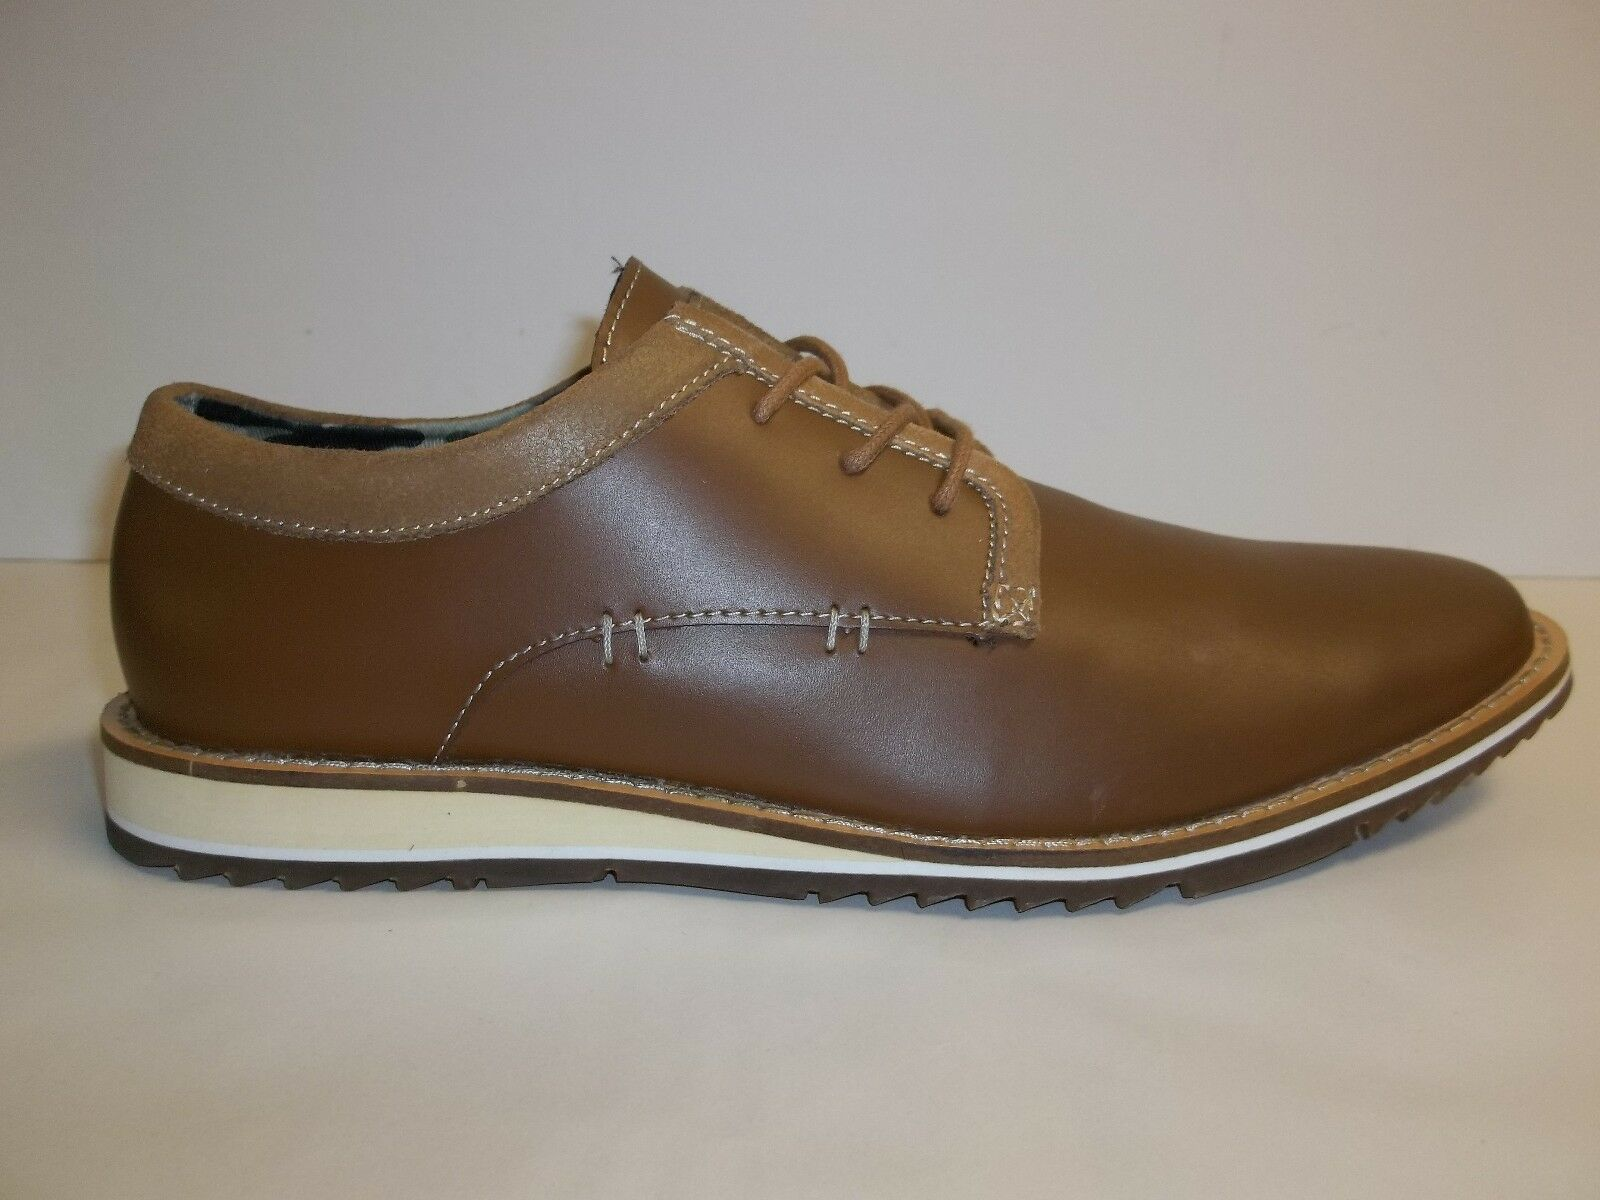 New Oxfords Taglia M M marrone Guess 12 Pelle Pelle New HORTEN 12 zqIwza7x